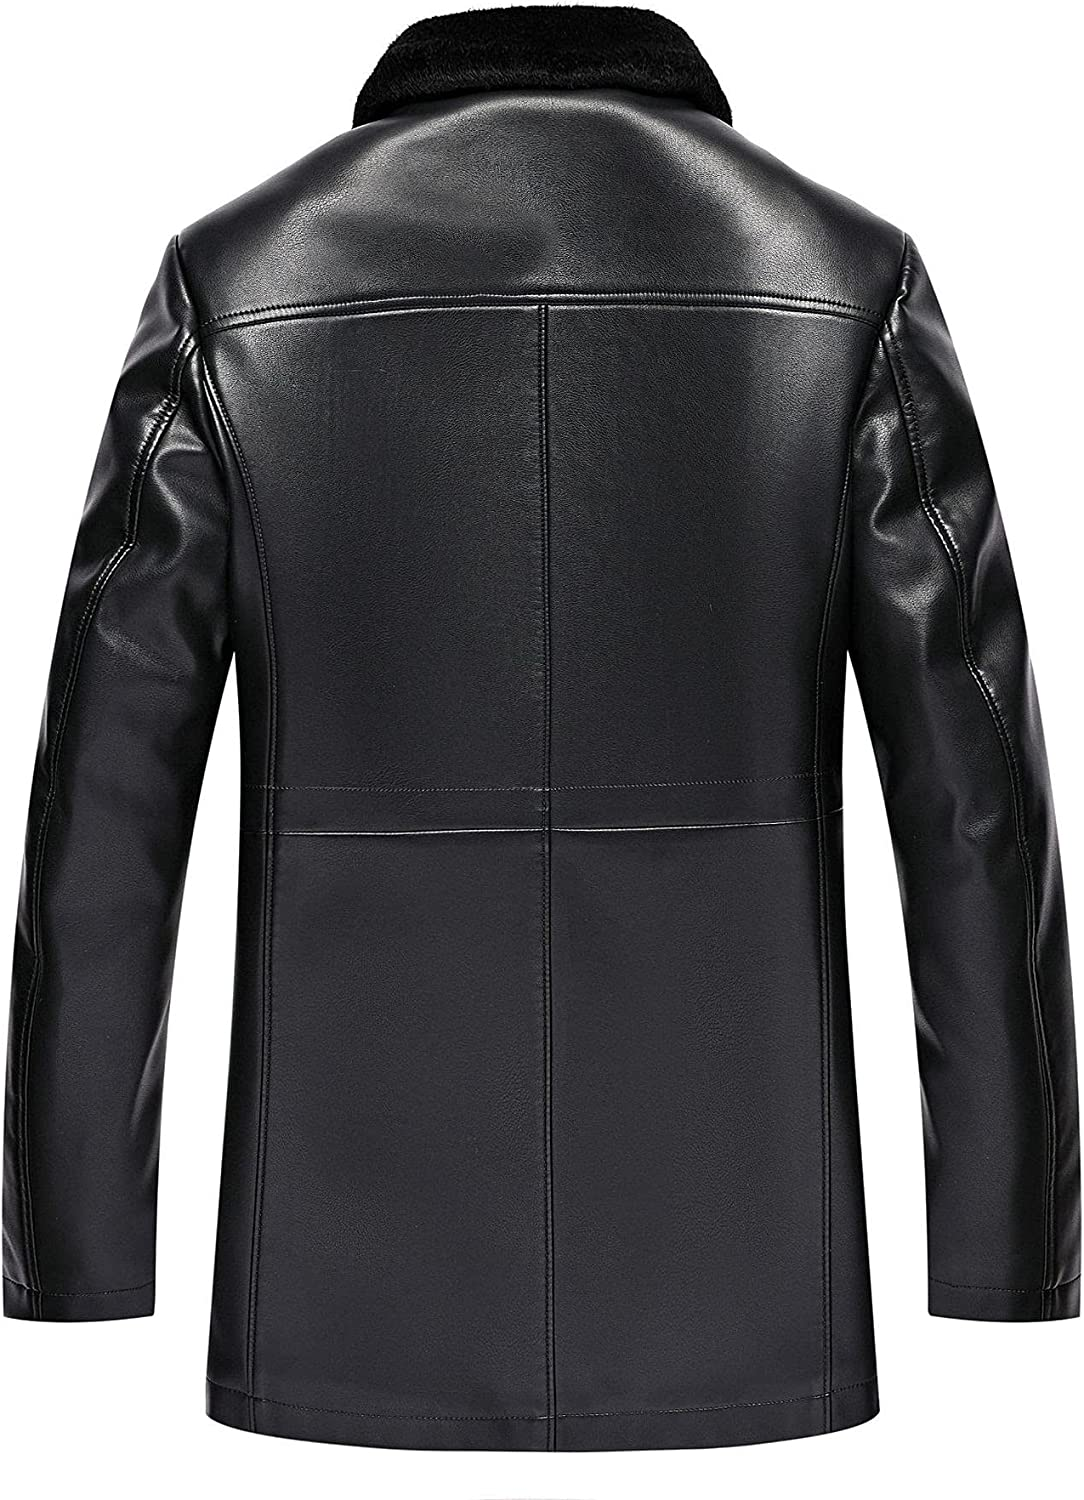 Leather Jackets For Men Carcoat Style Shearling Jacket